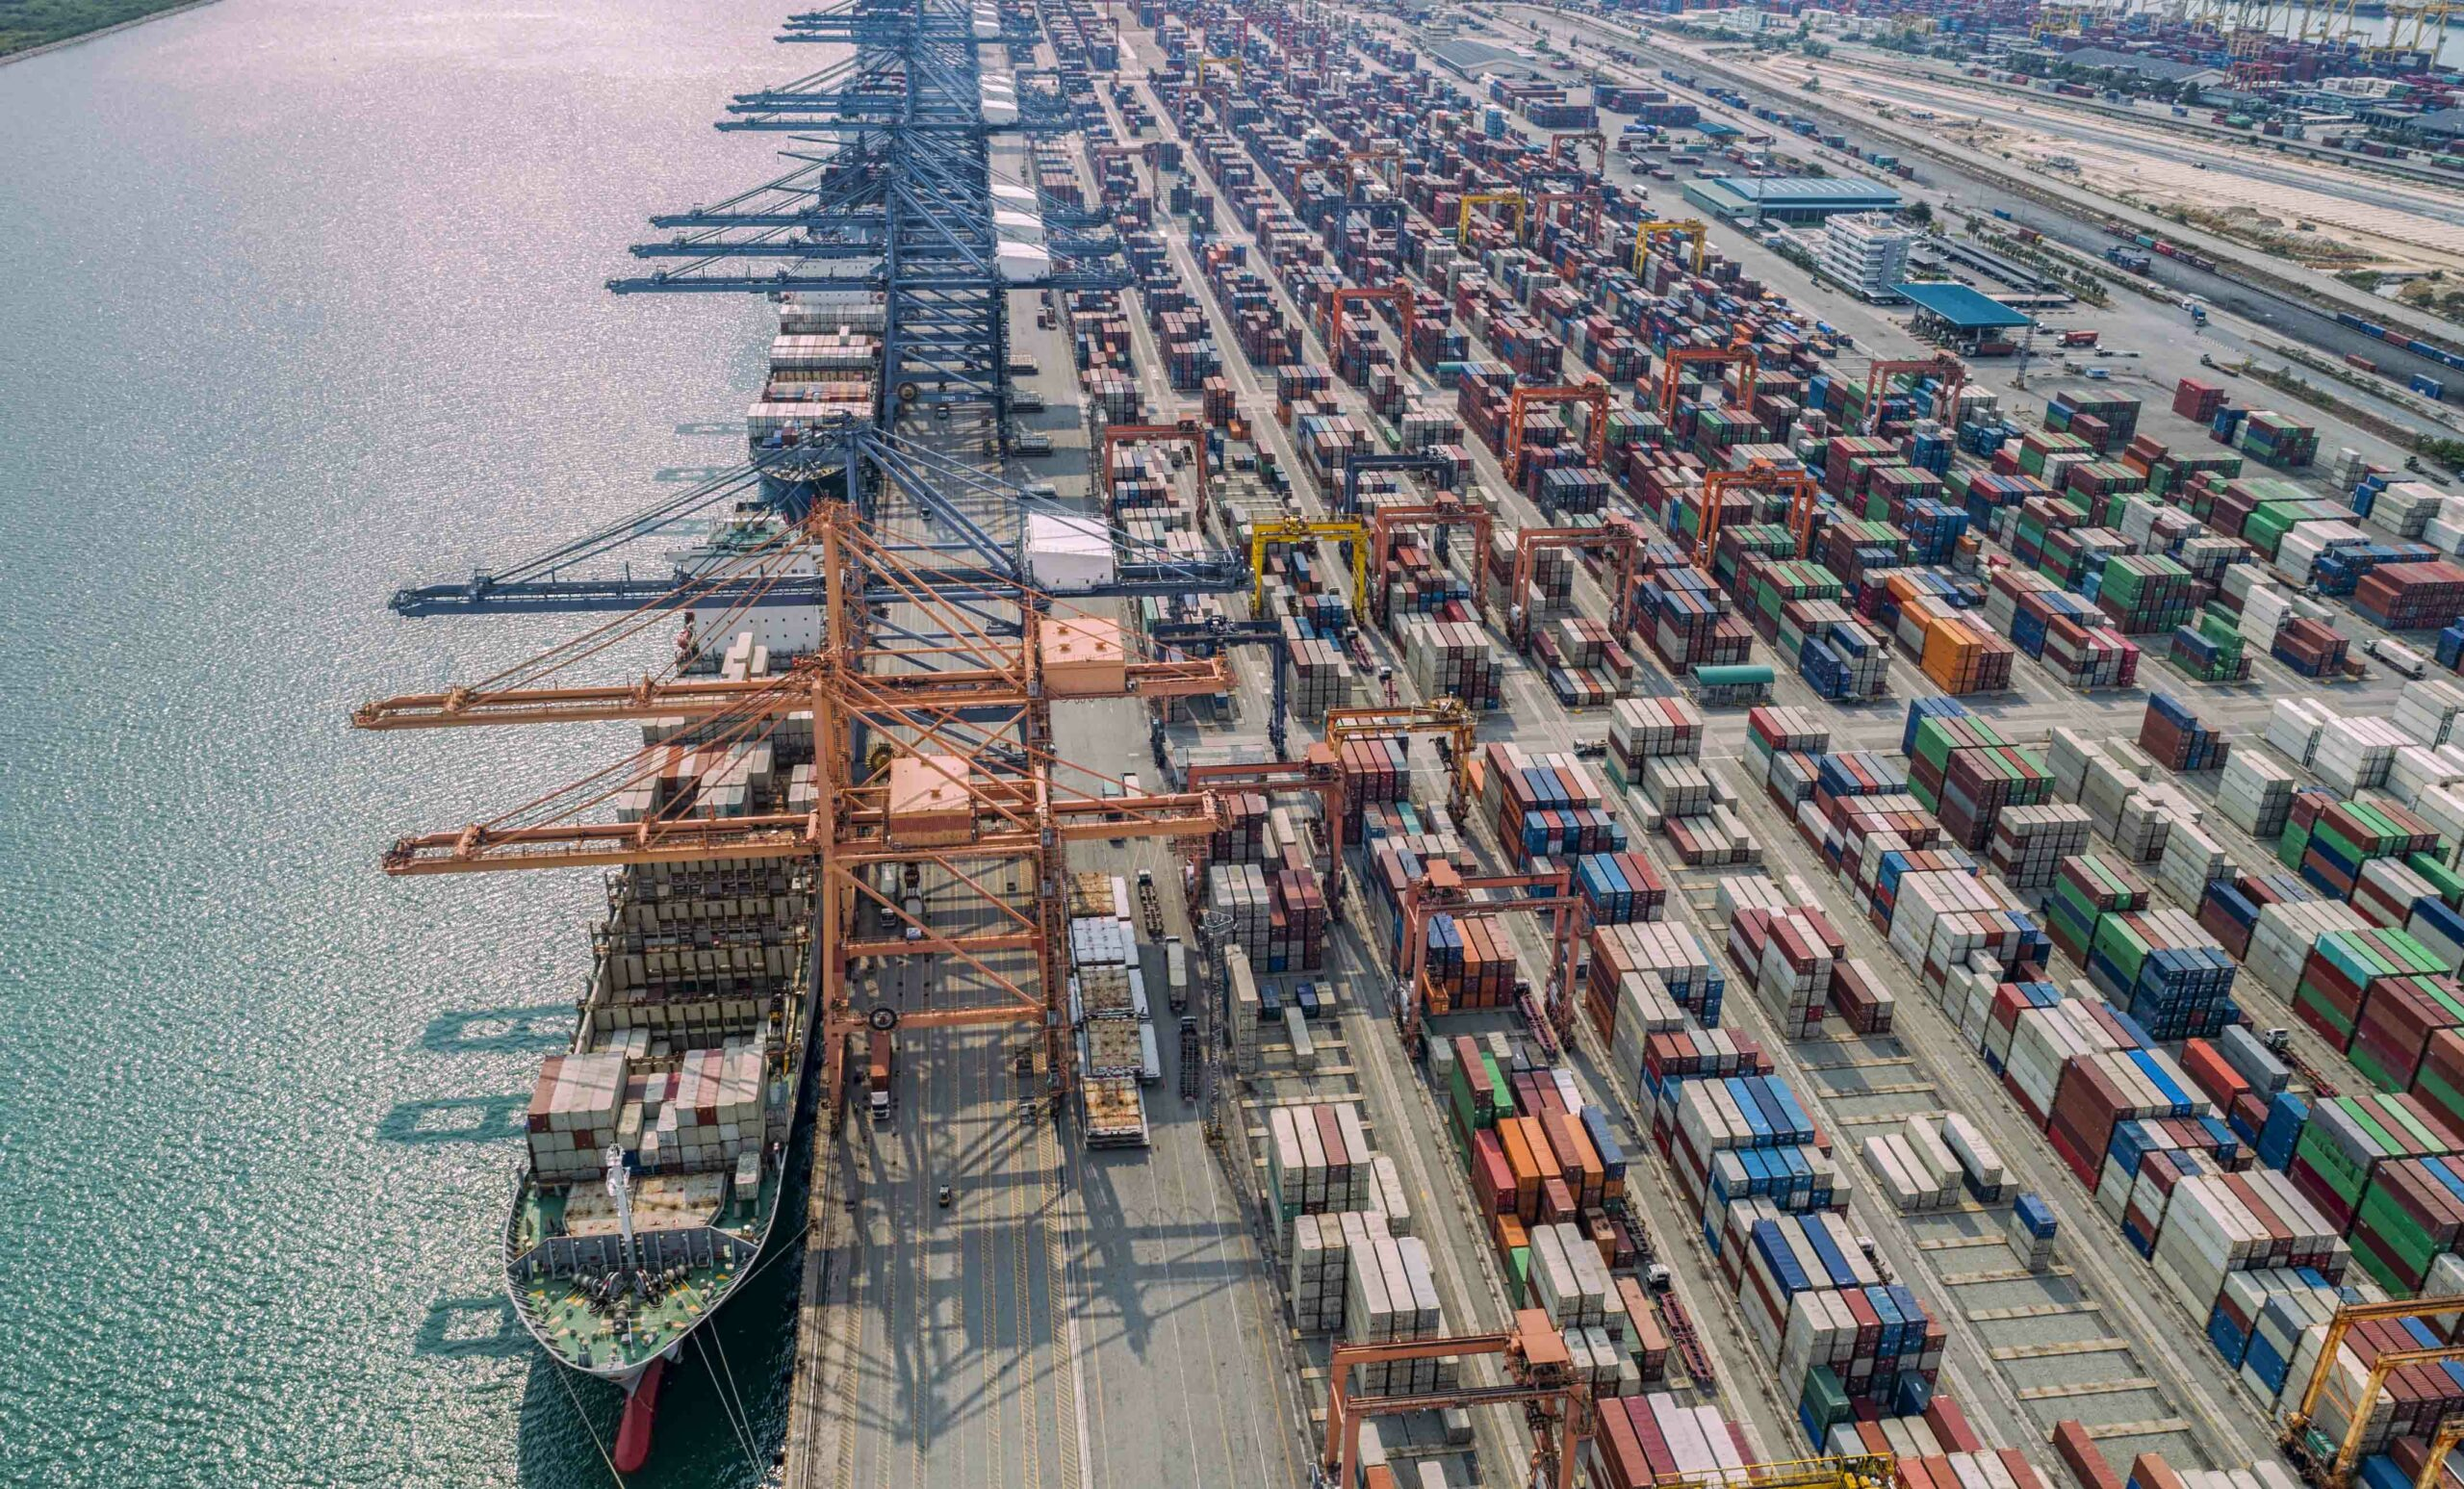 Another sad record : 37 ships forced to drift off southern California waiting for port access Apollo Cargo Alliance